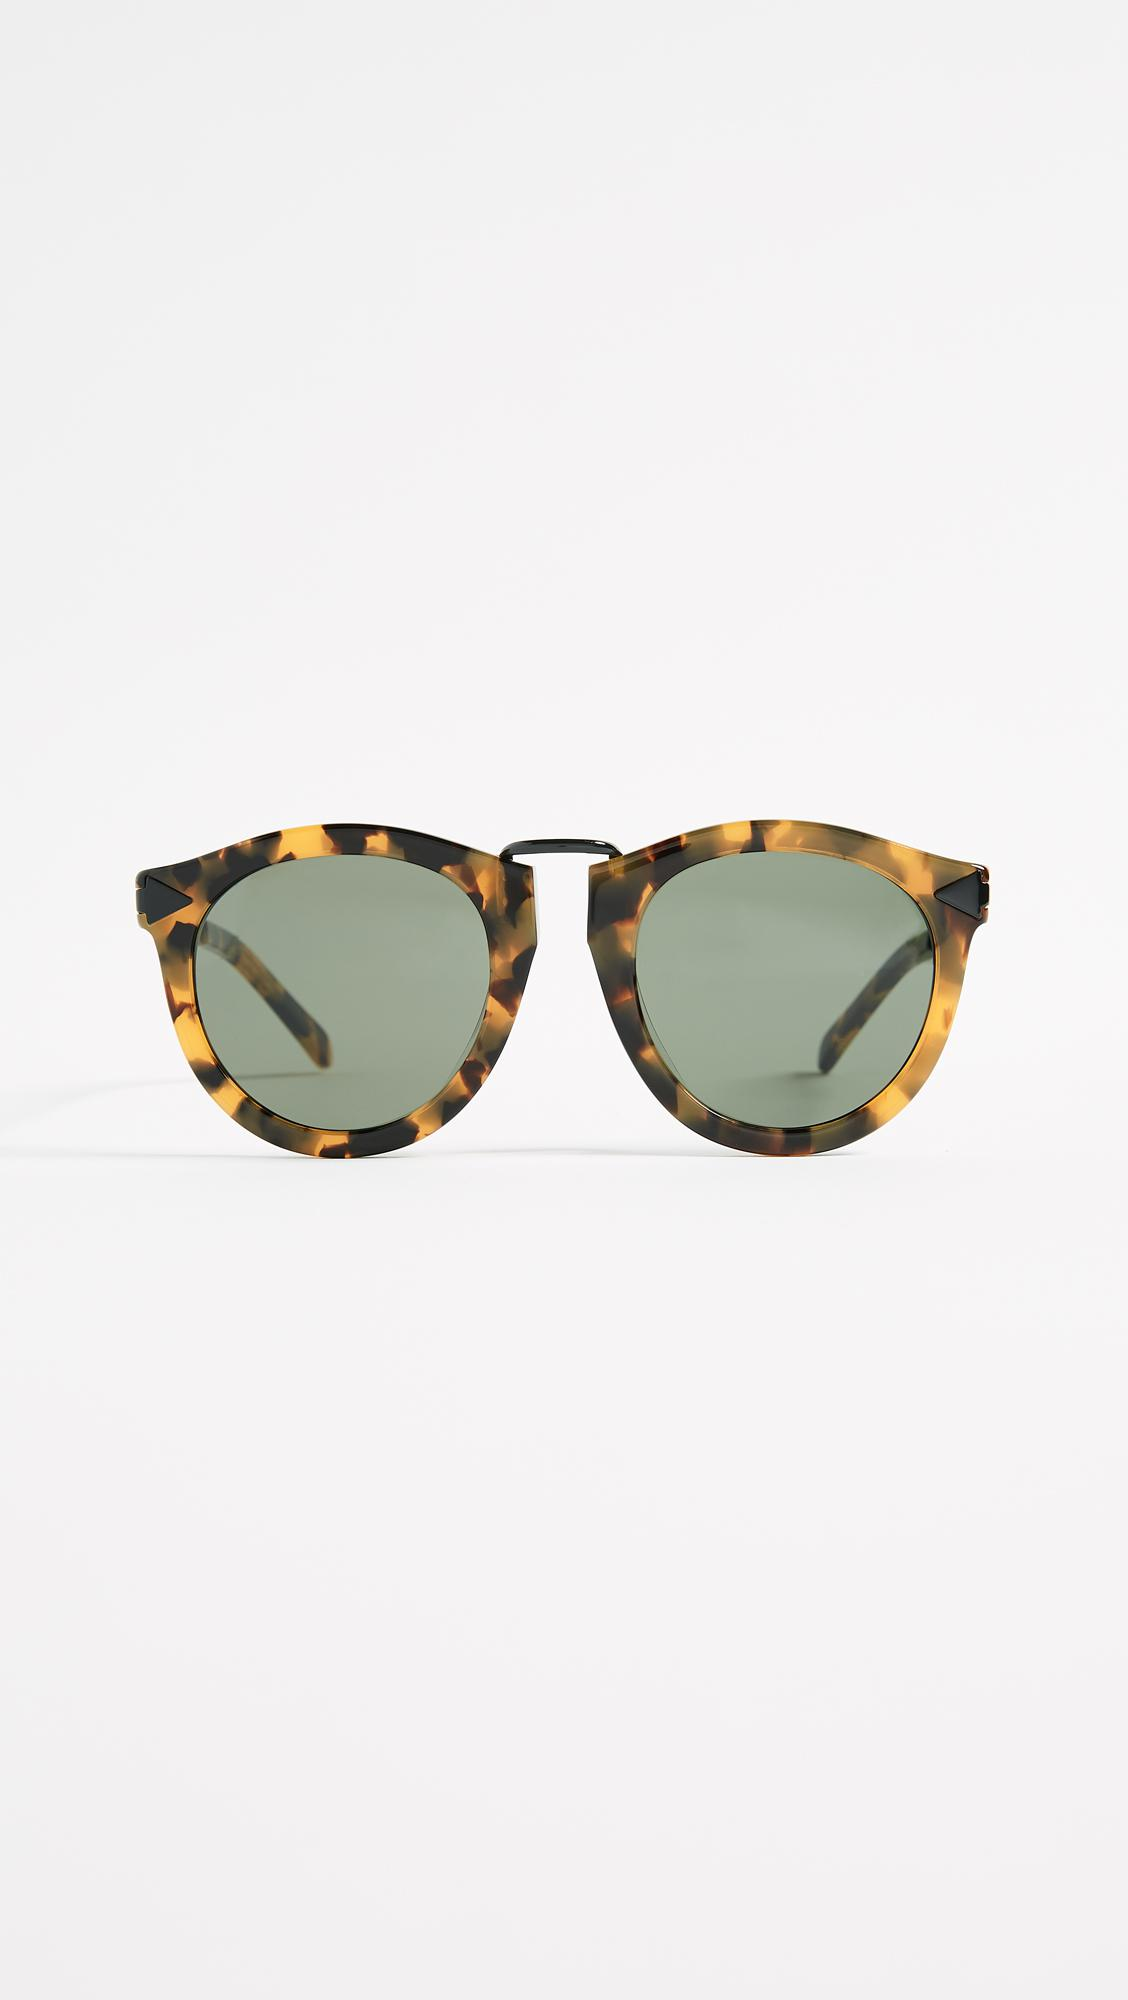 611a34a1829d Lyst - Karen Walker Special Fit Harvest Sunglasses in Gray